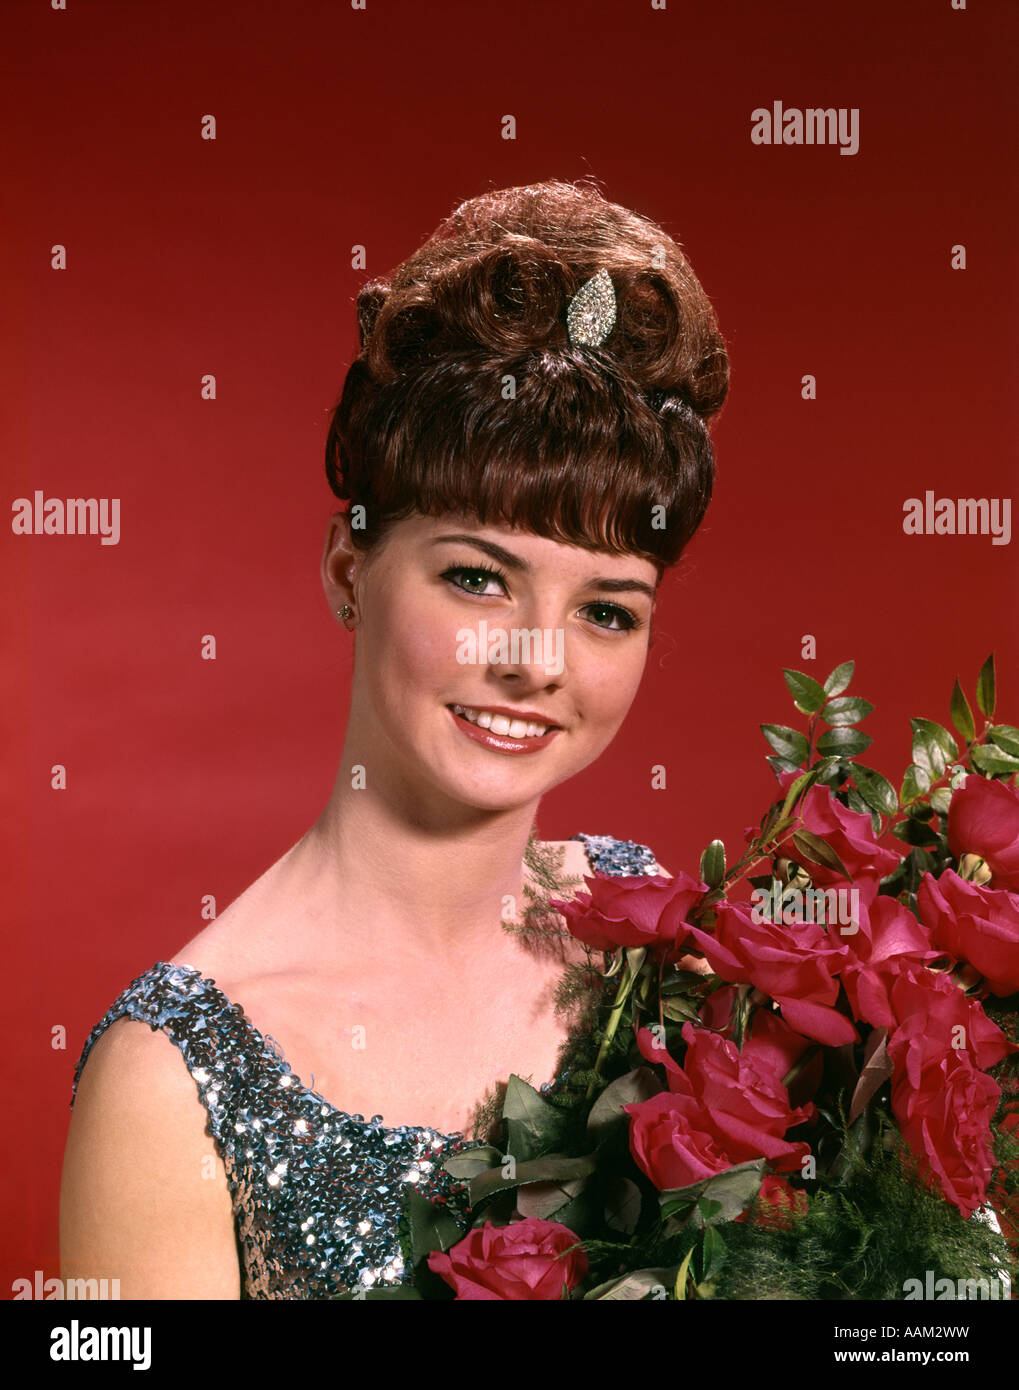 1960s Young Woman Prom Beauty Queen Bee Hive Hair Do Tiara Bouquet